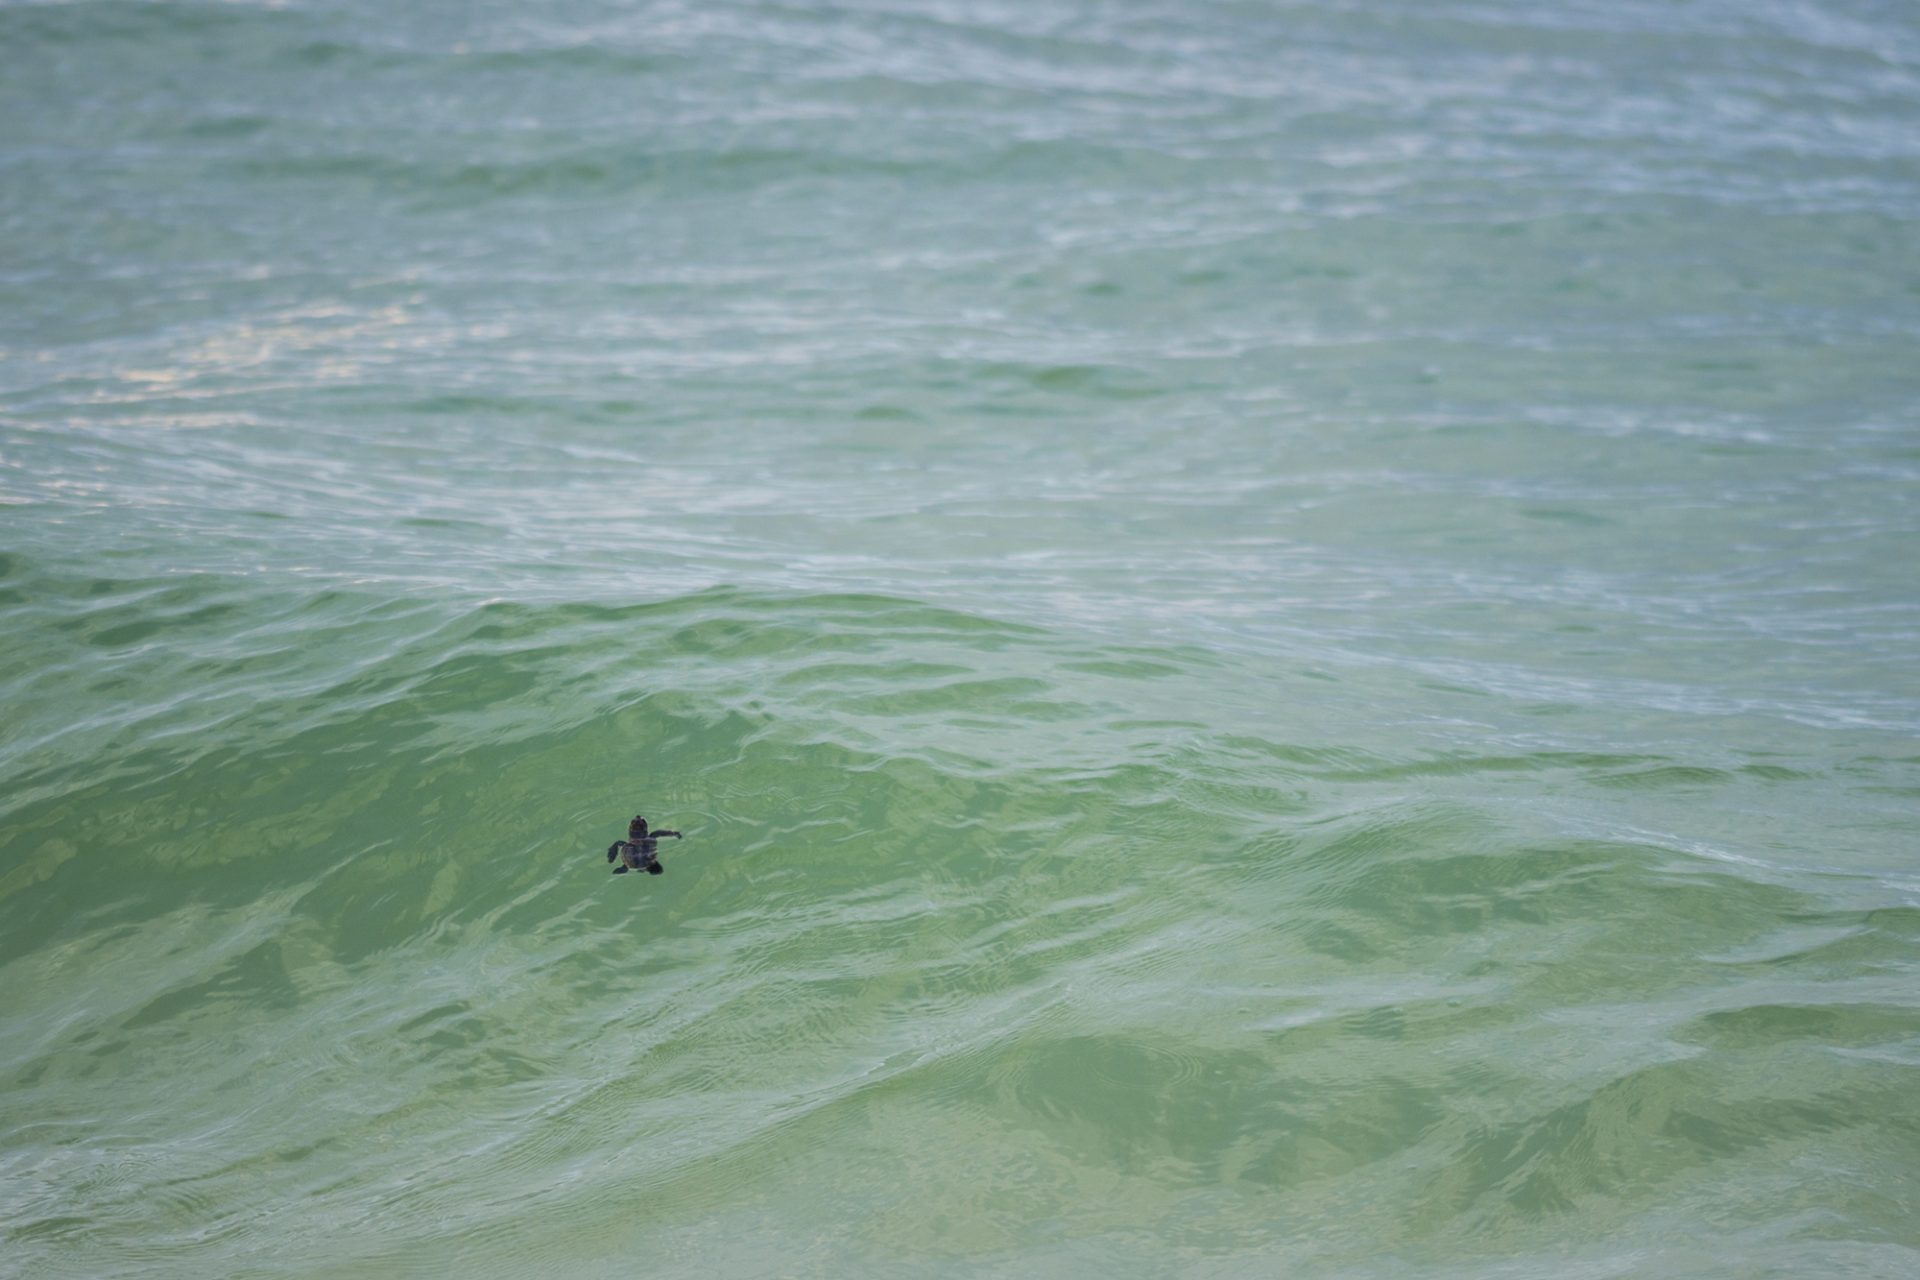 Hatchling in the Sea